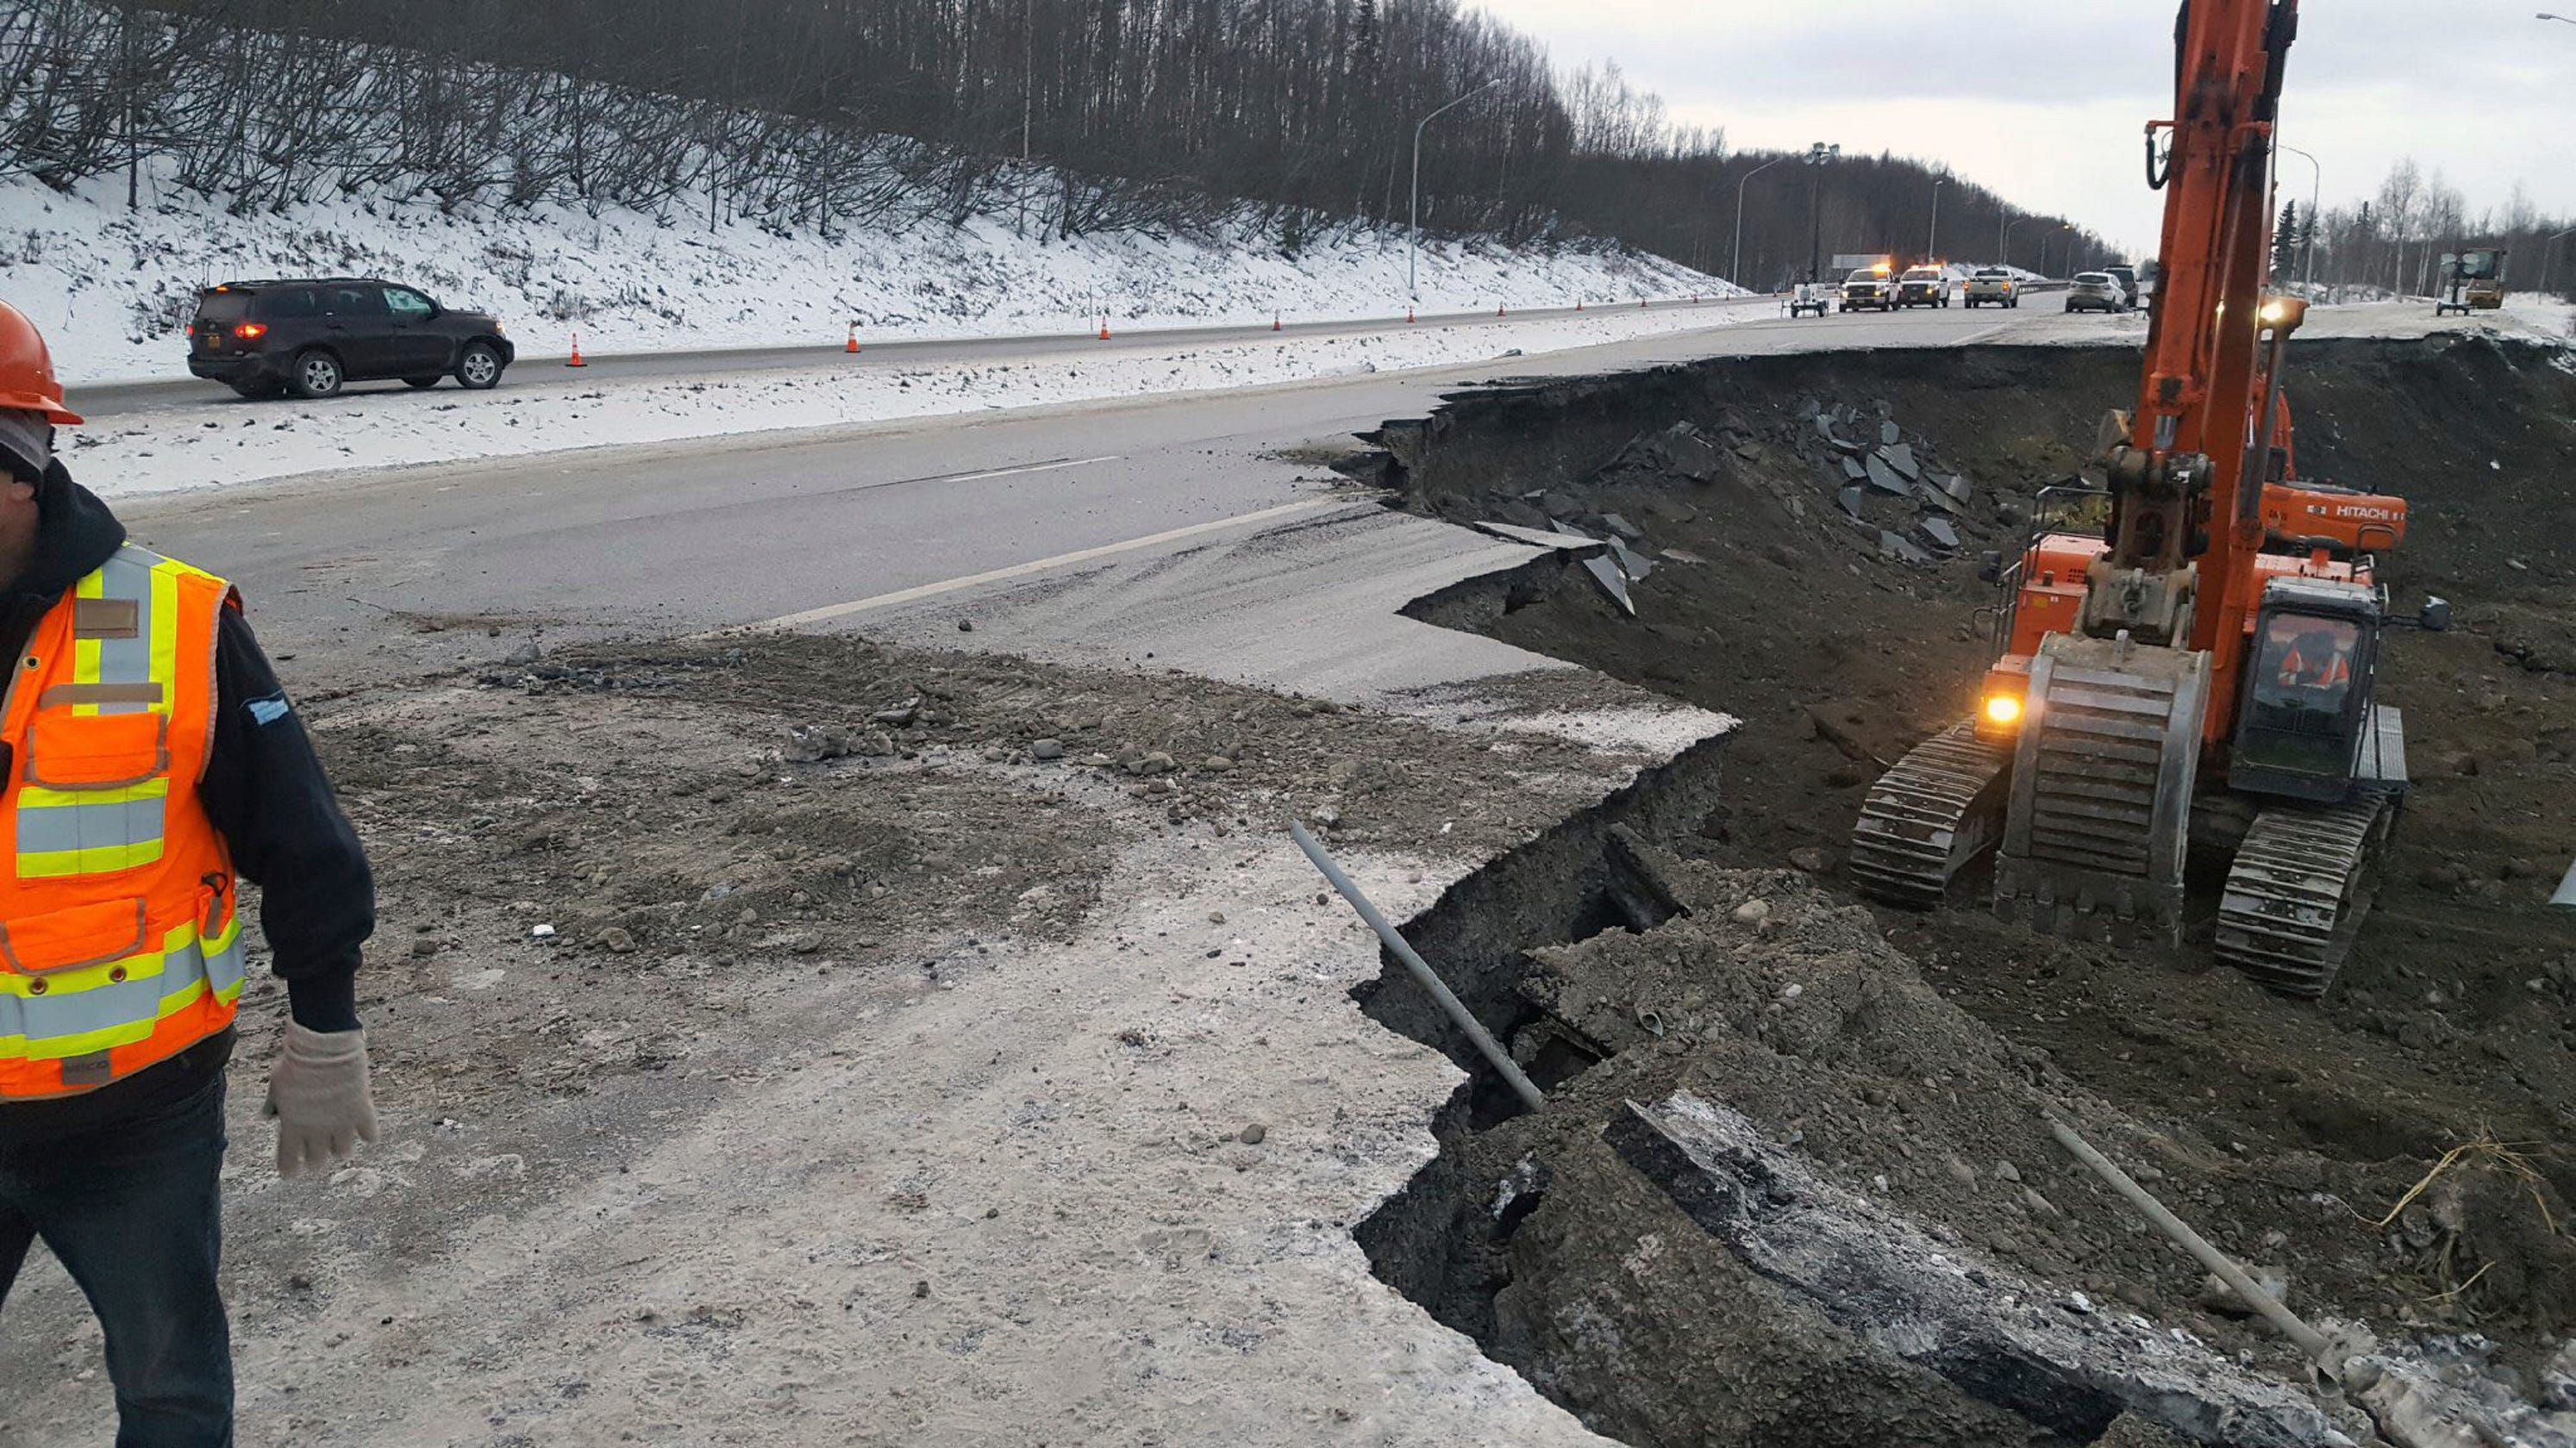 alaska earthquake today - photo #19